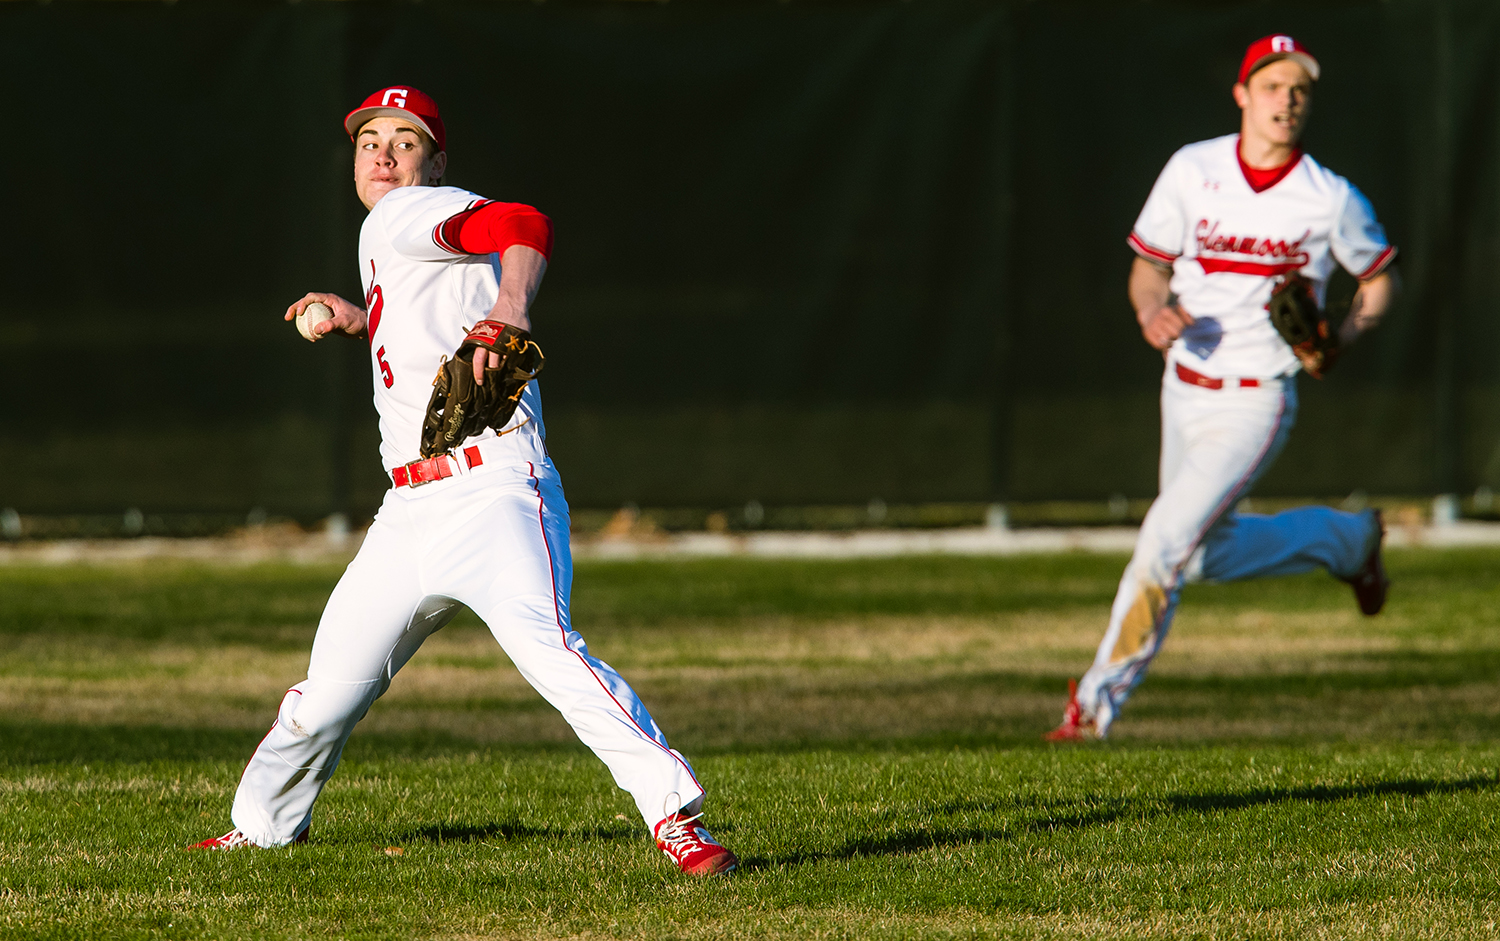 Glenwood's Jalen Ping throws the ball back to the infield after a U-High hit at Chatham Community Park's Bob Erickson Field Monday, March 26, 2019. [Ted Schurter/The State Journal-Register]